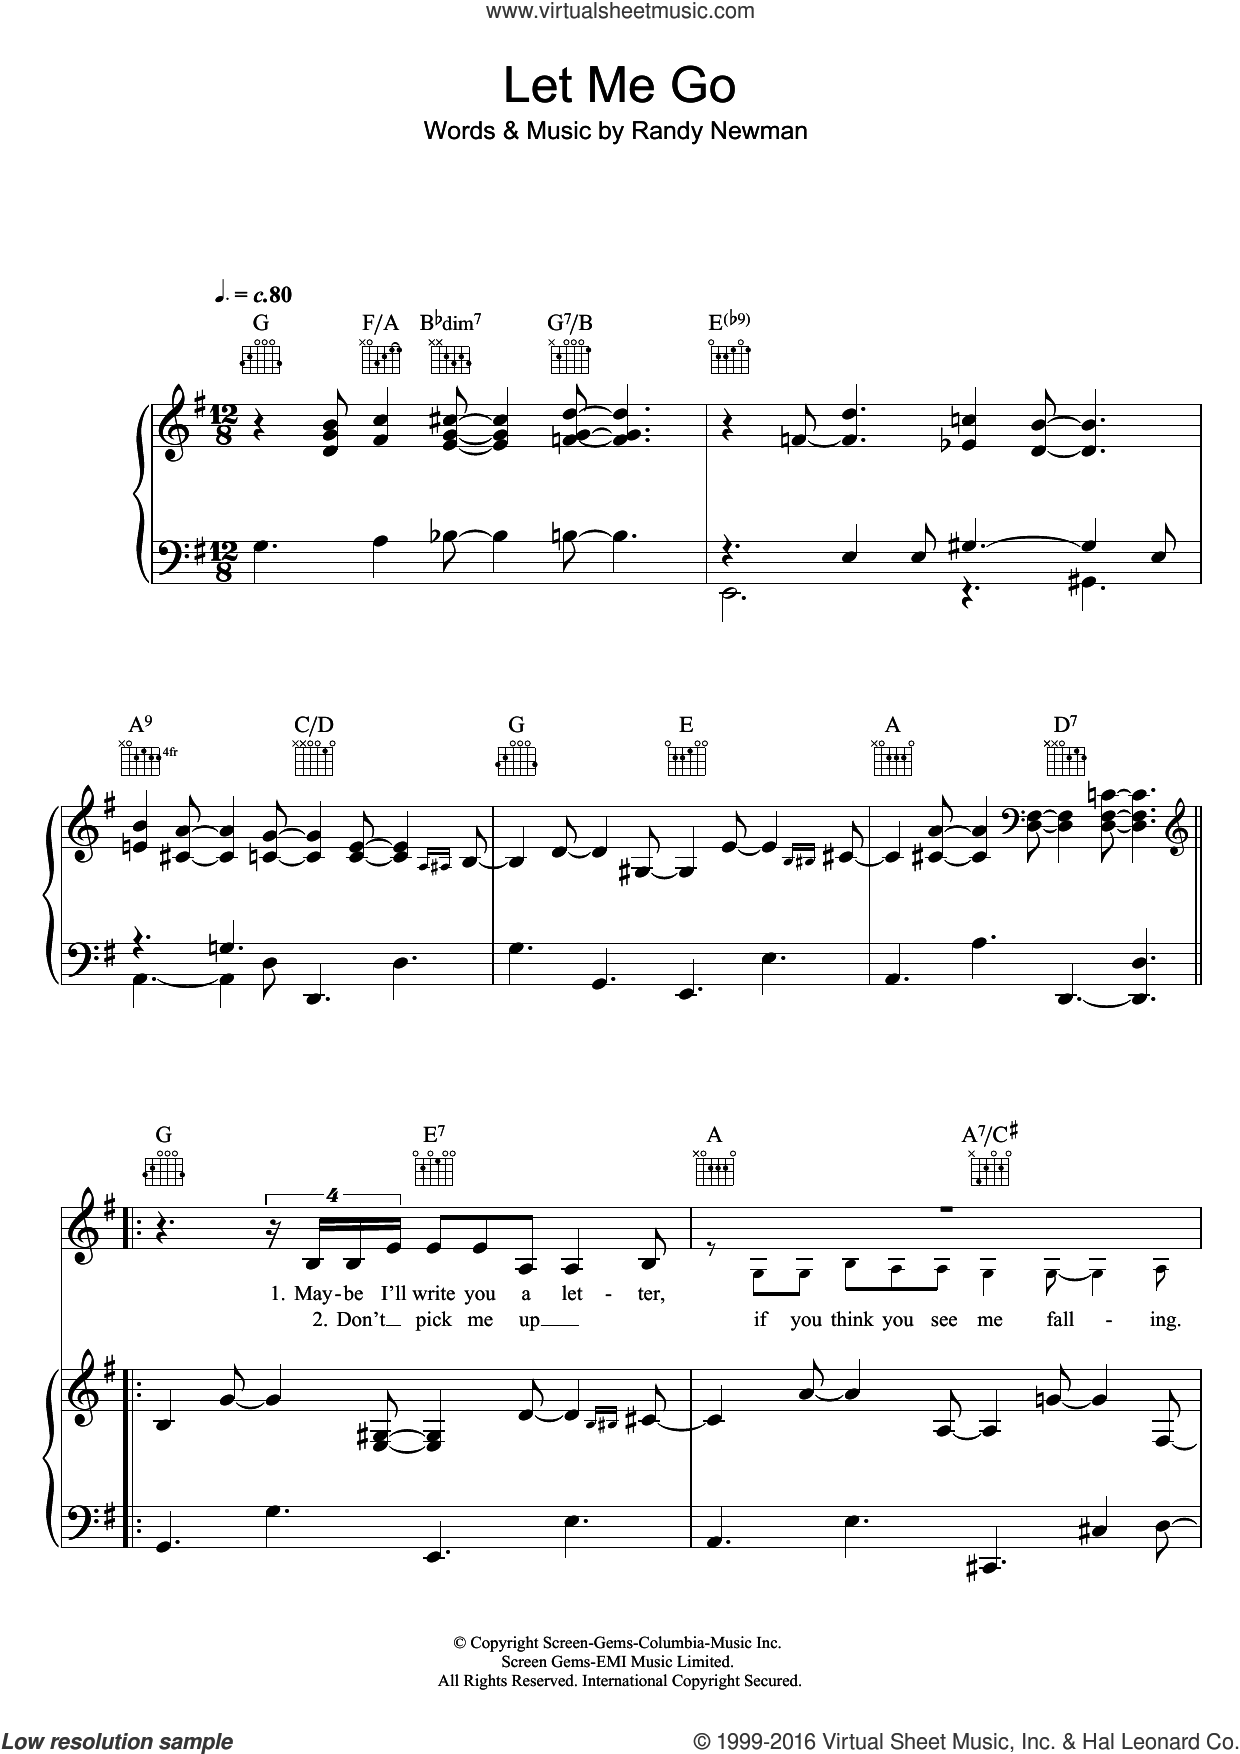 Let Me Go sheet music for voice, piano or guitar by Randy Newman. Score Image Preview.